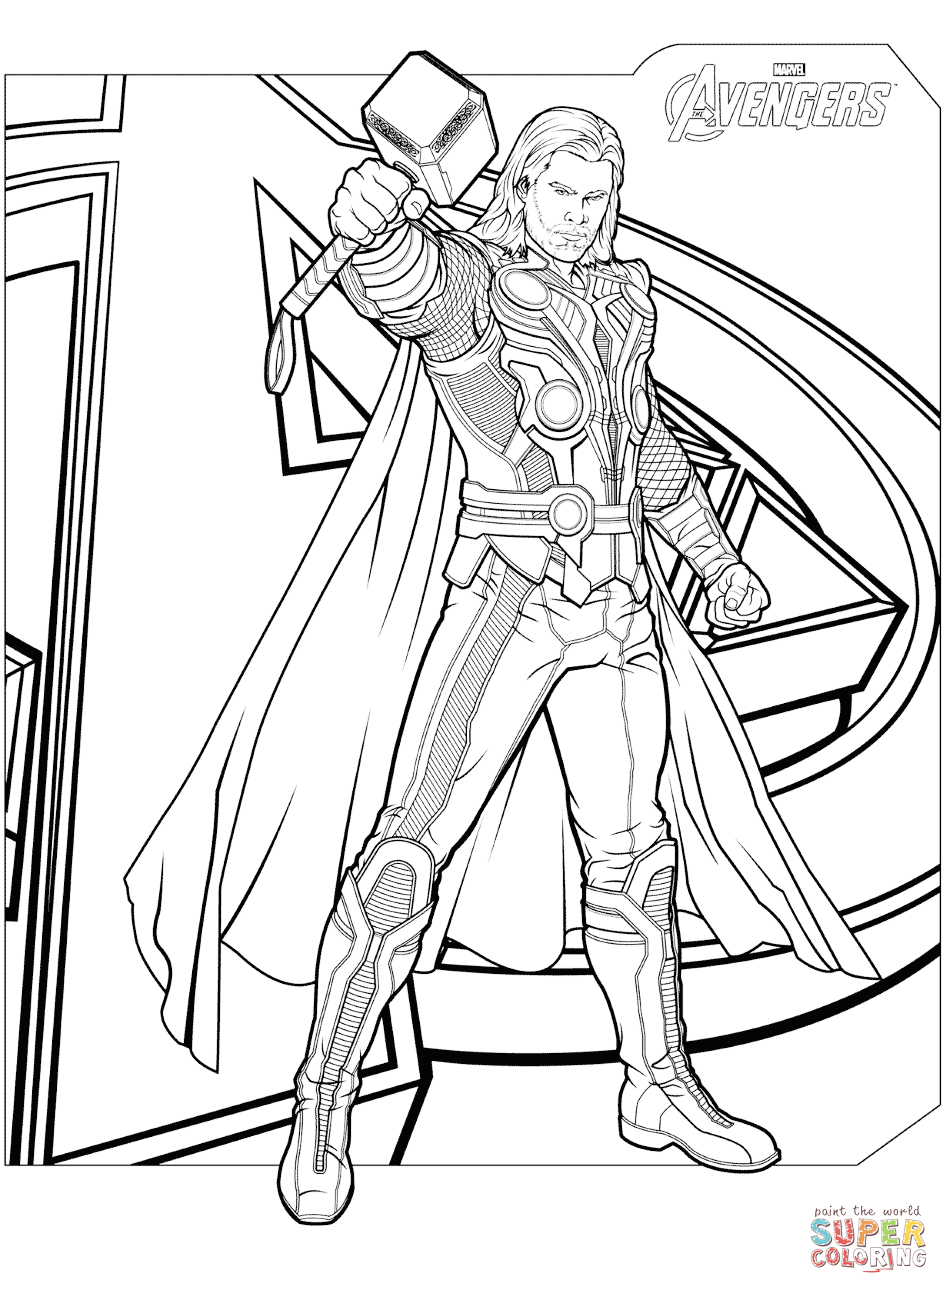 Avengers Thor Colouring Pages Avengers Coloring Pages Marvel Coloring Avengers Coloring